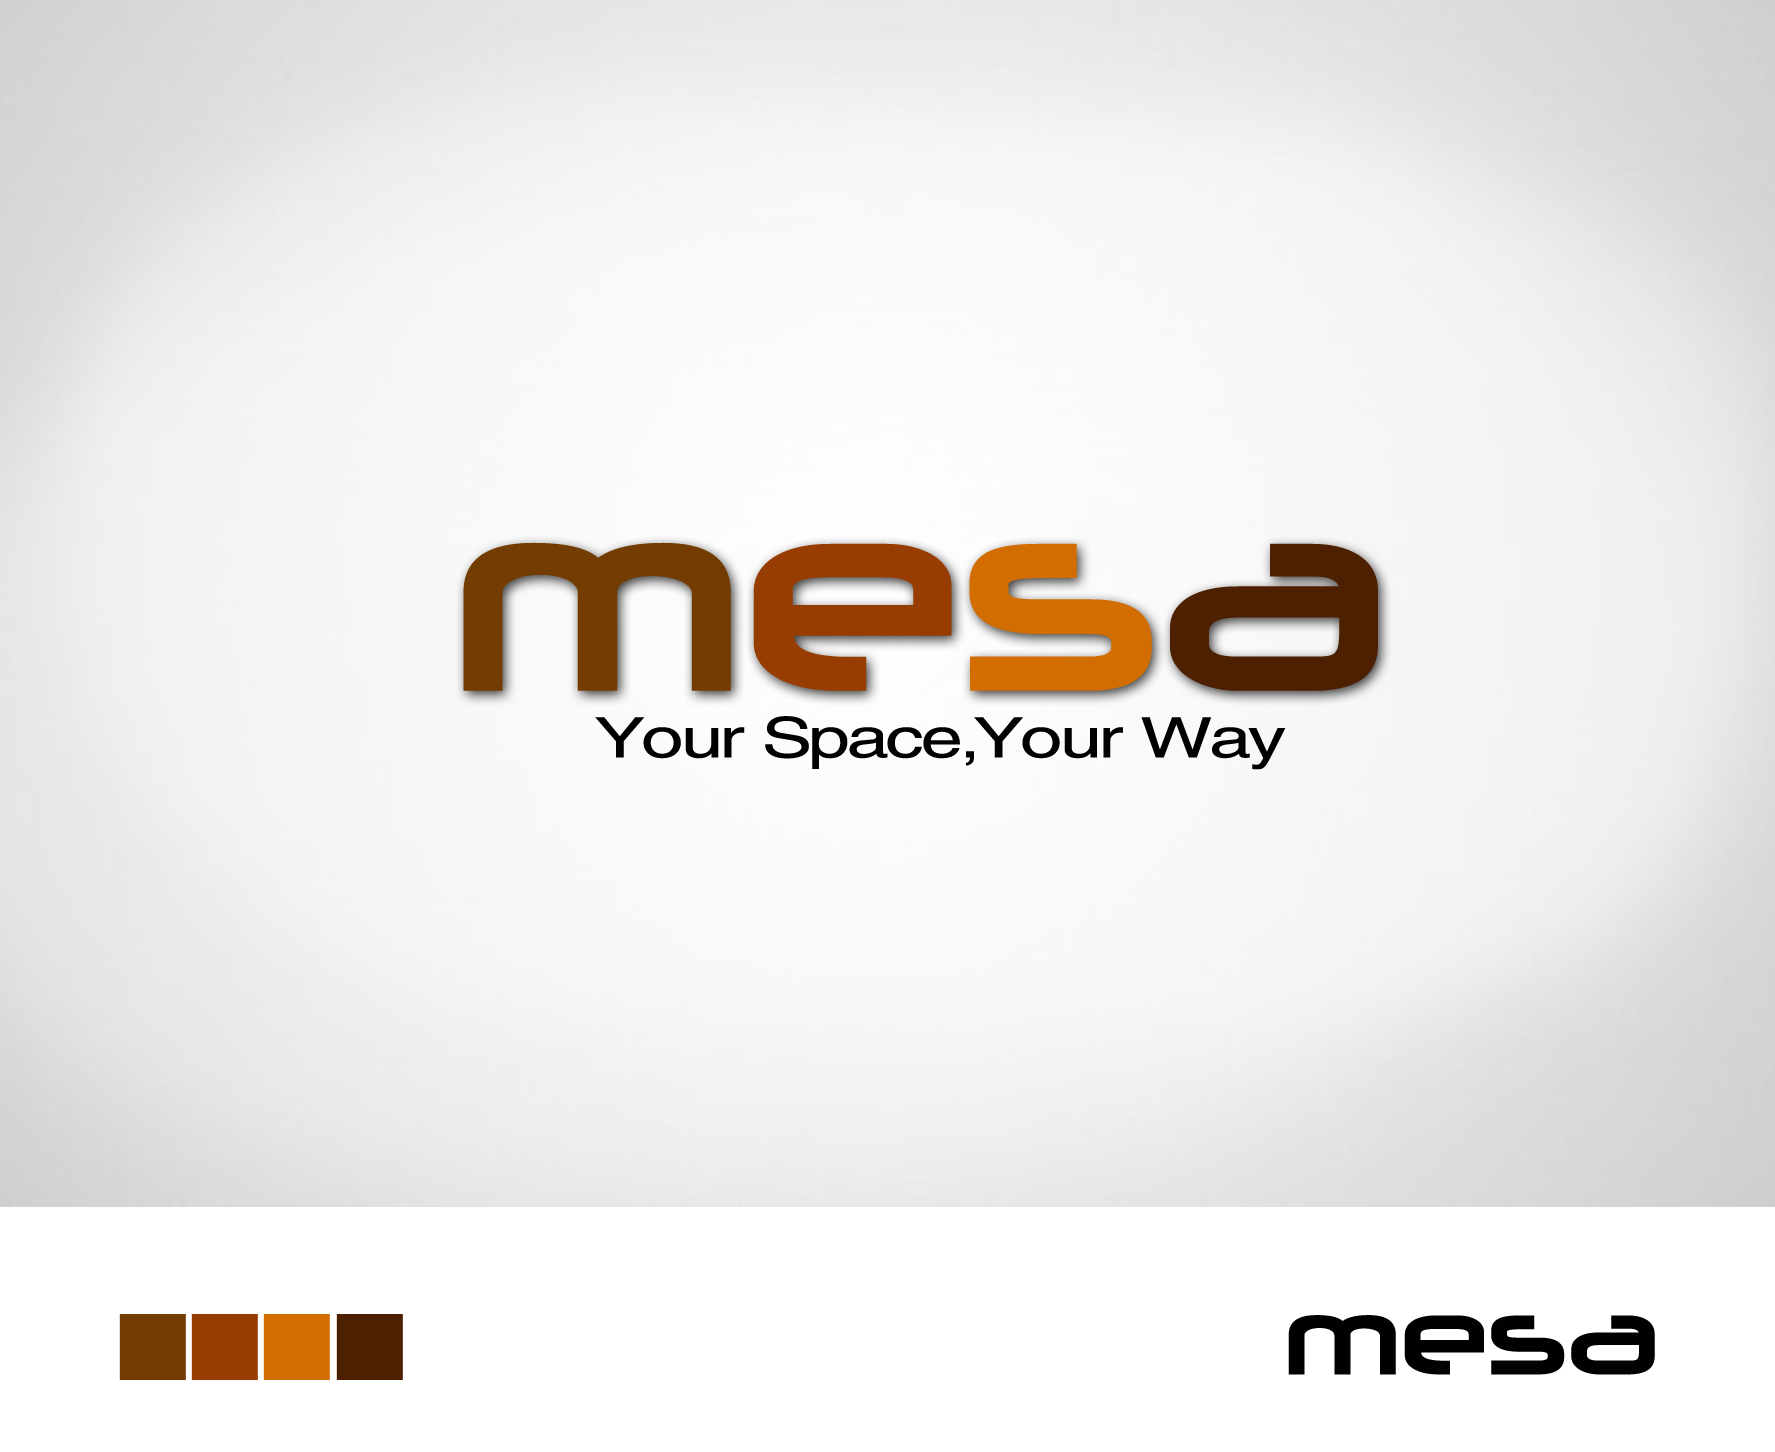 Logo Design by Lama Creative - Entry No. 6 in the Logo Design Contest Logo Design for Mesa.